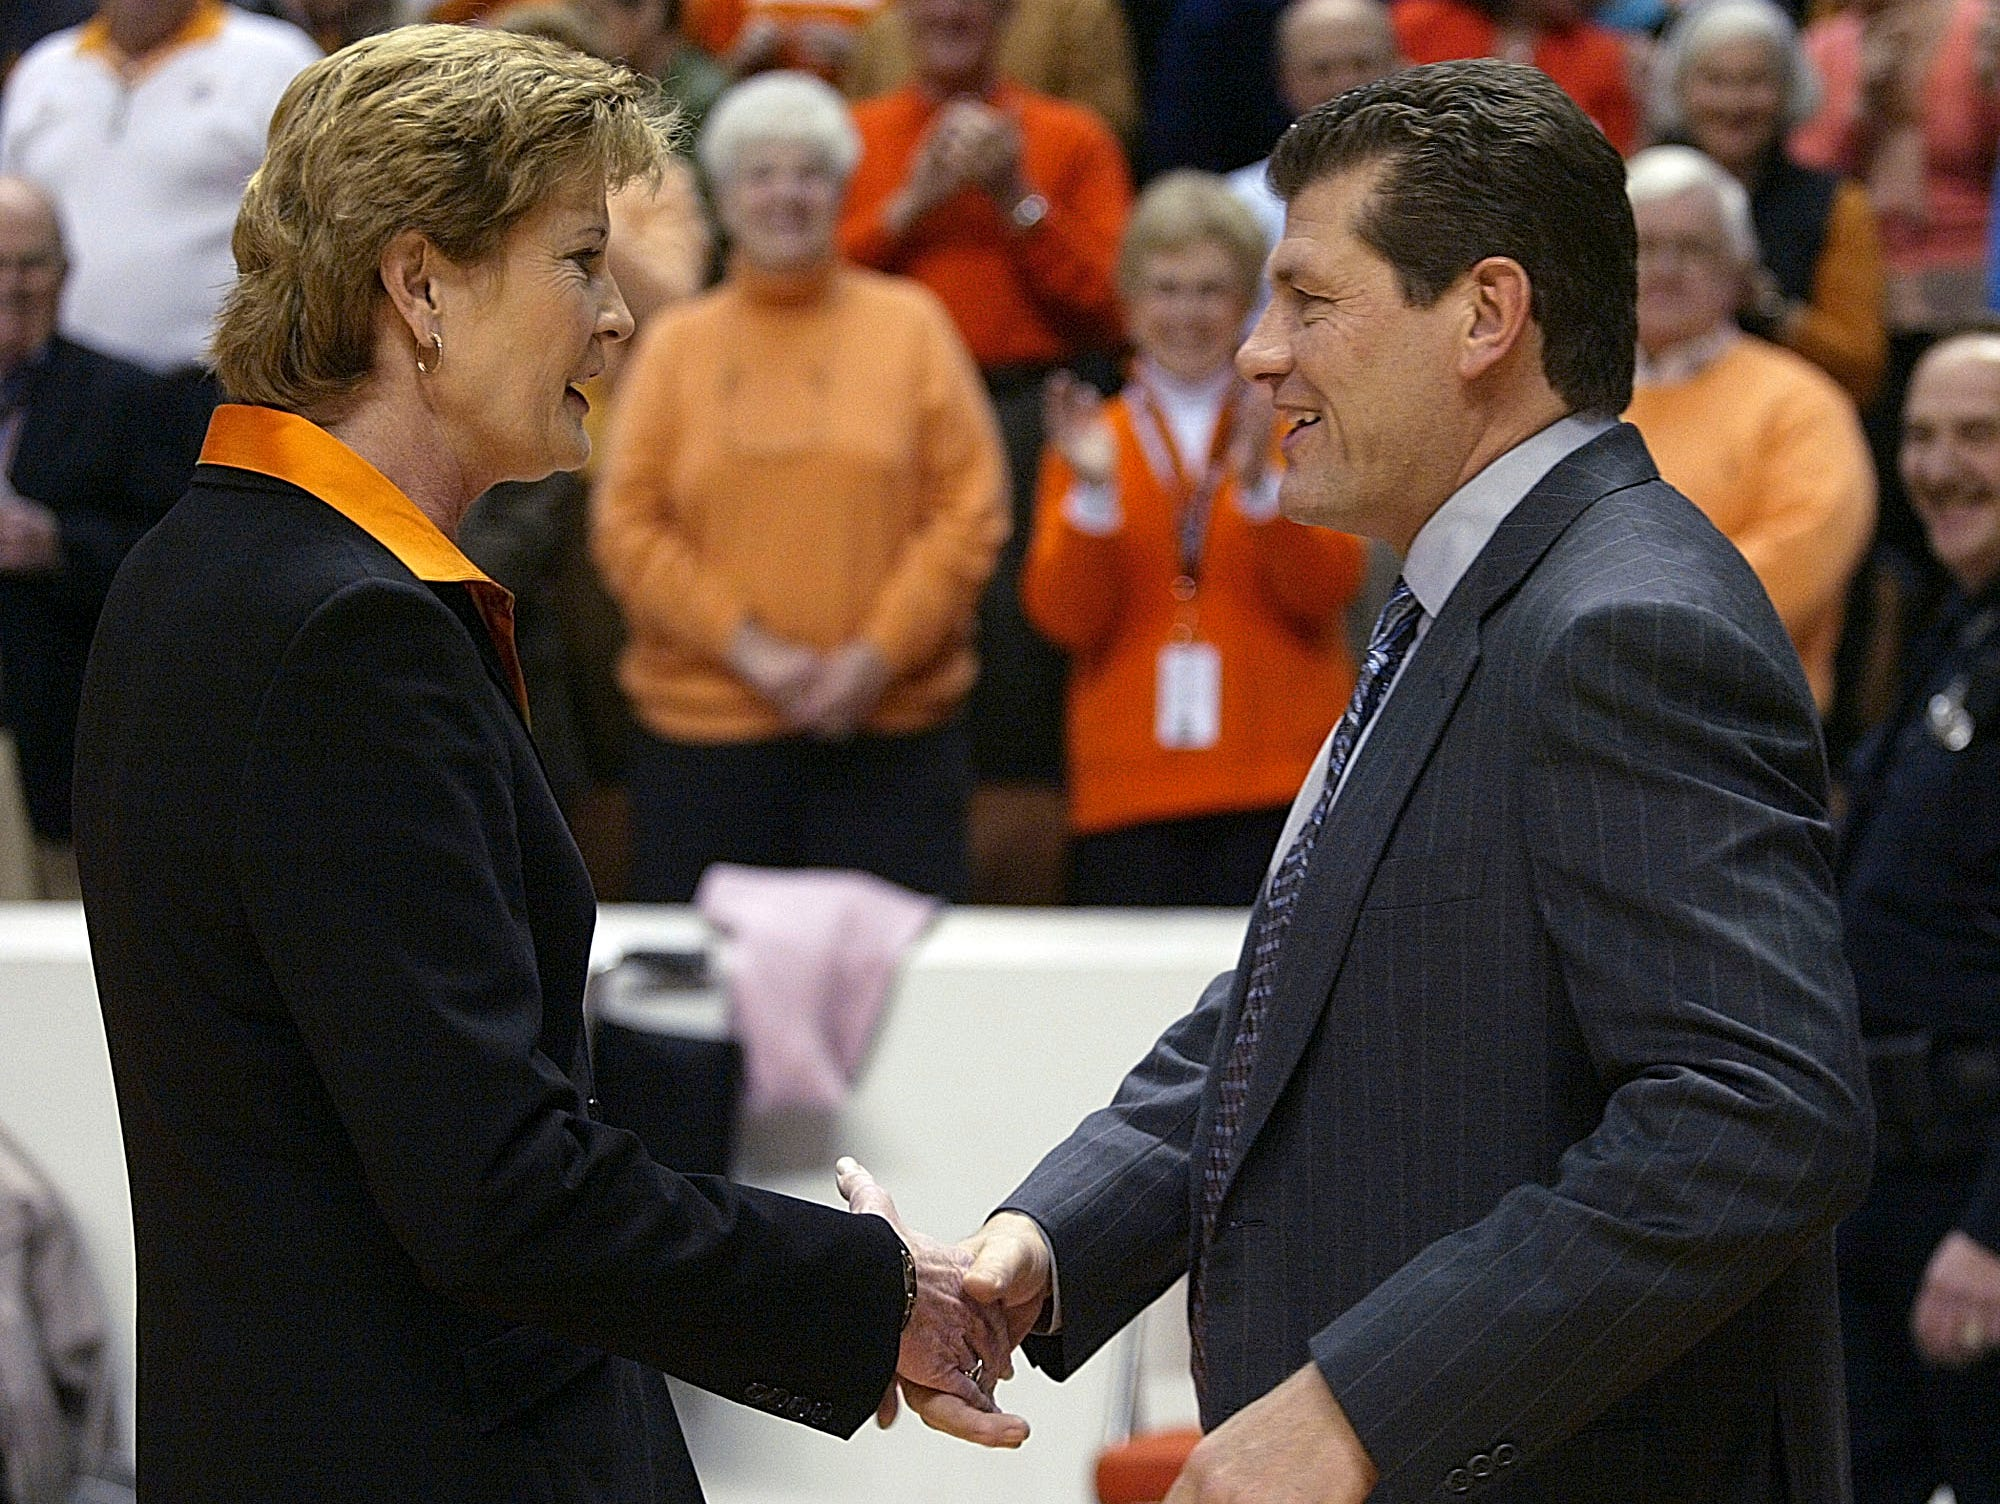 Tennessee coach Pat Summitt, left, shakes hand with Connecticut coach Geno Auriemma before their women's college basketball game in this Jan. 7, 2006 file photo in Knoxville, Tenn. The two schools meet against this weekend. (AP Photo/Wade Payne)